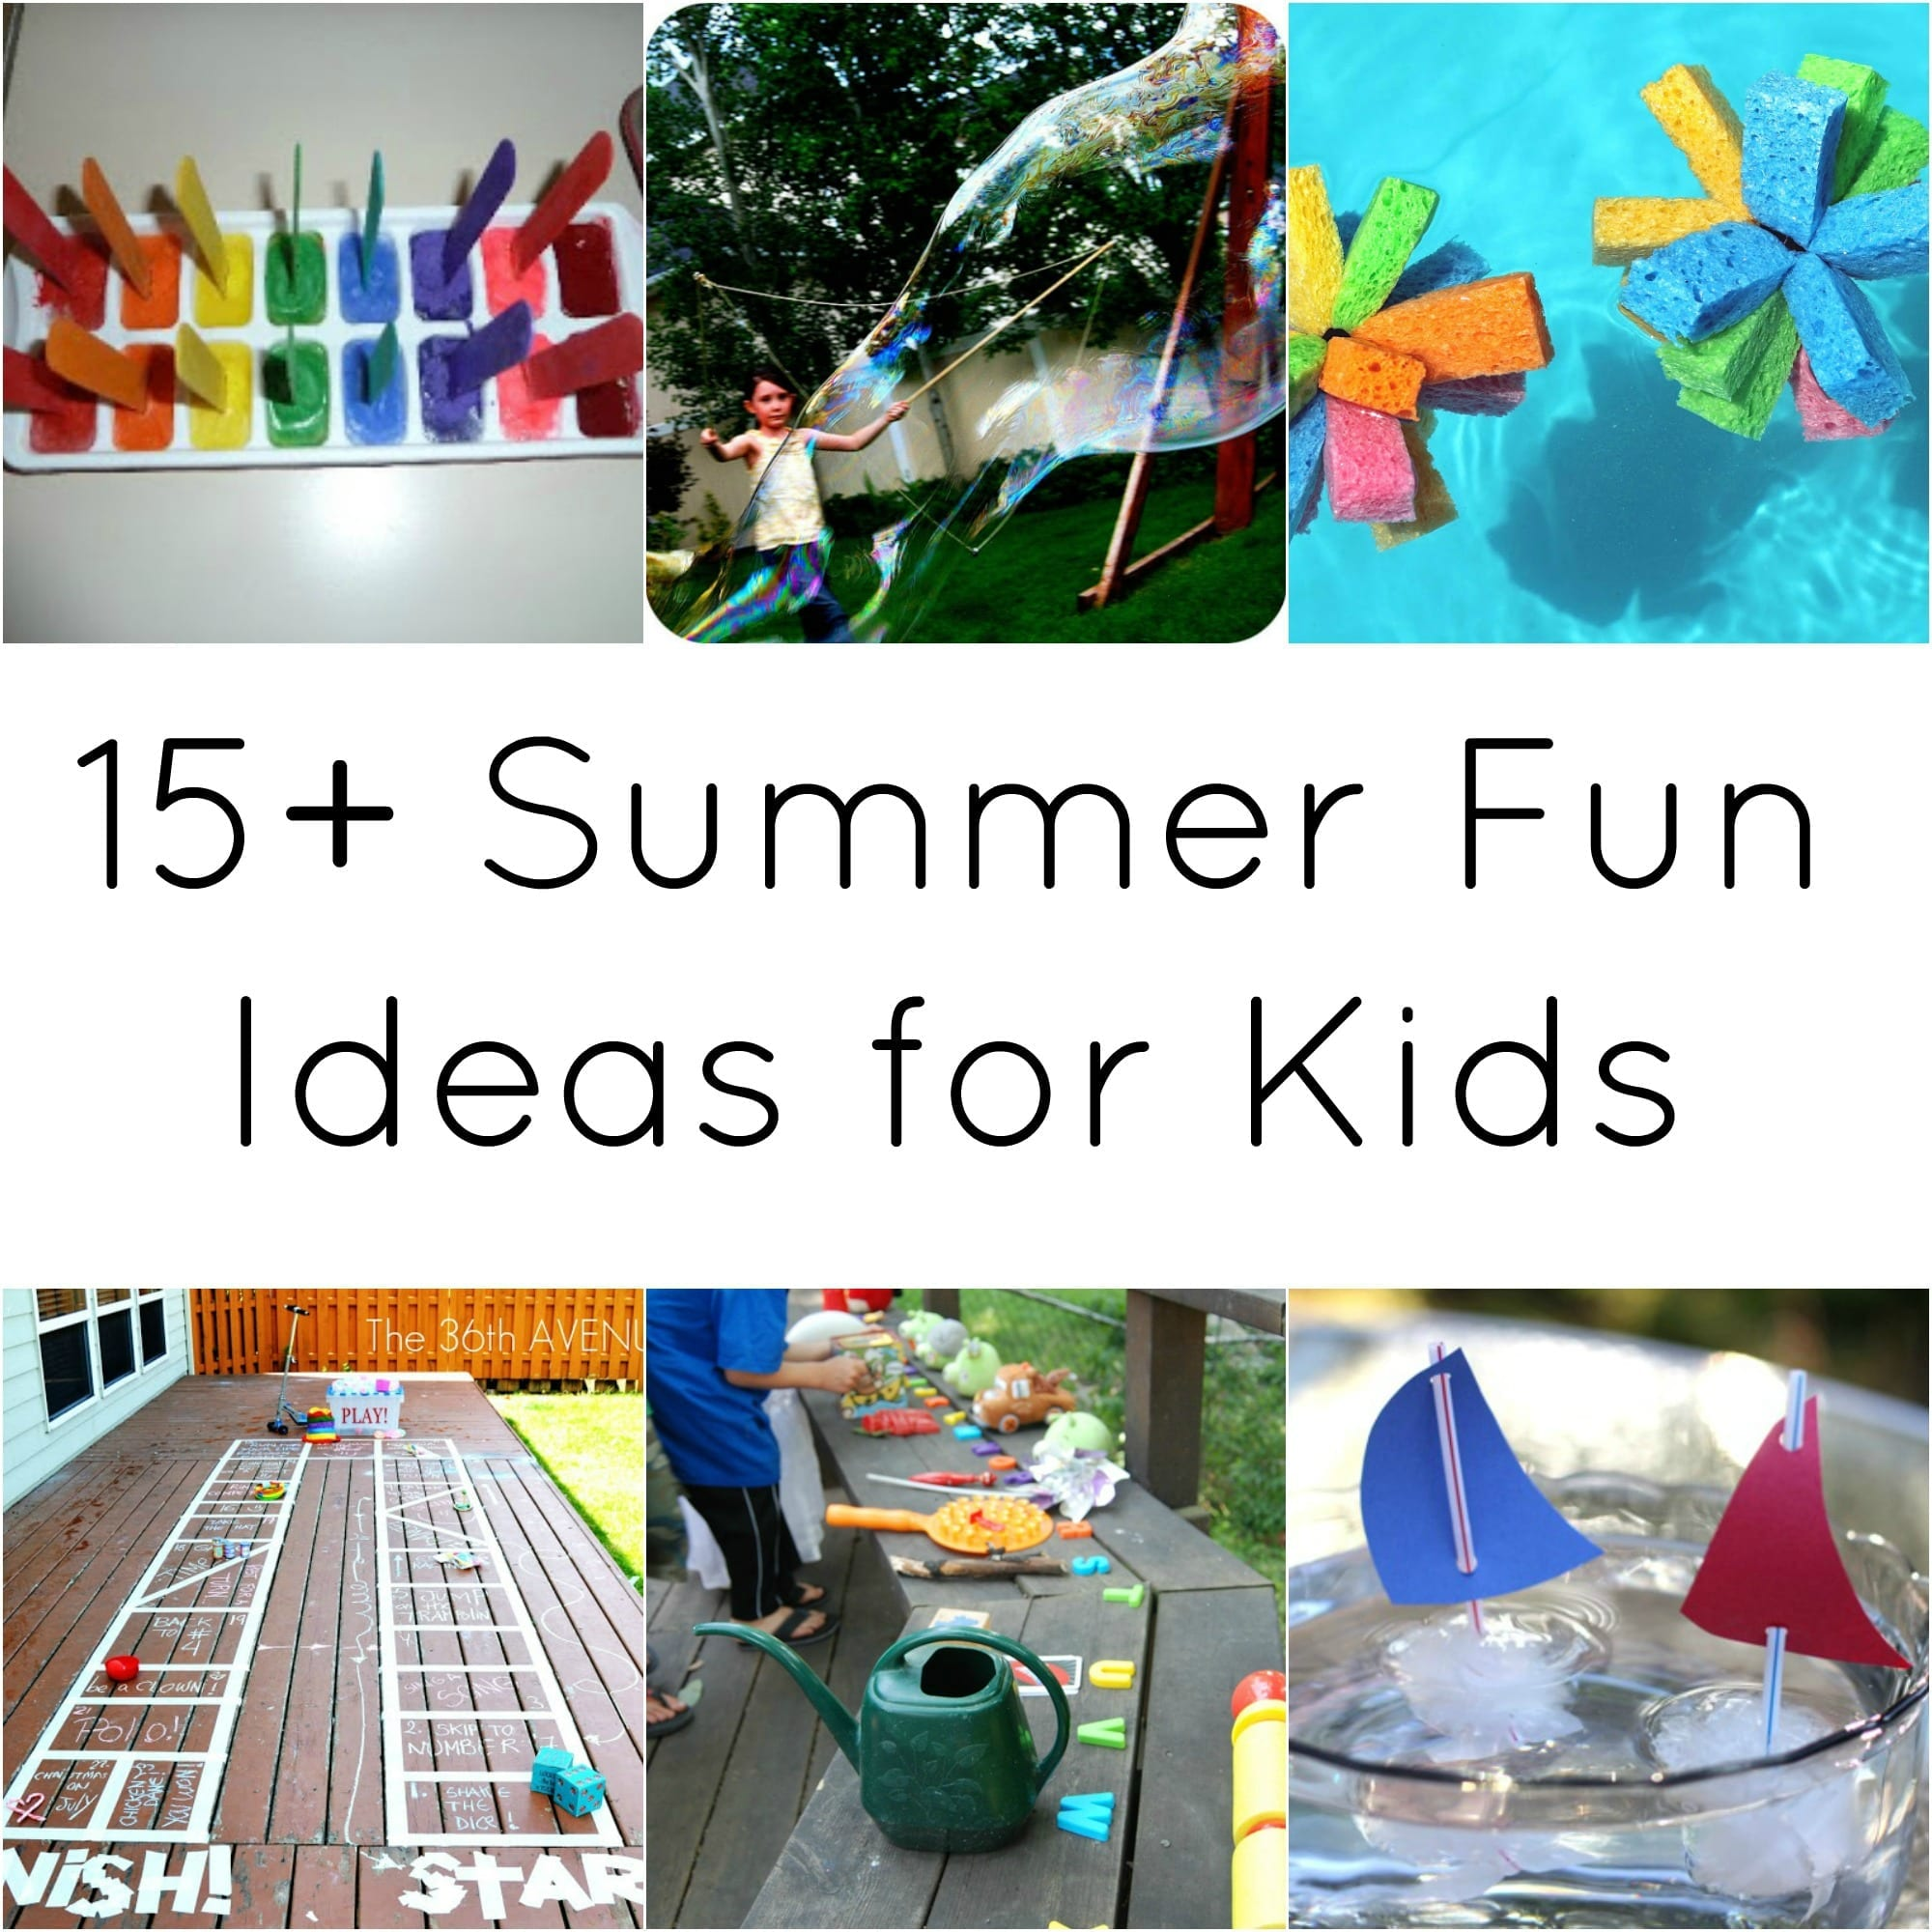 15 summer fun ideas for kids - Summer Pictures For Kids